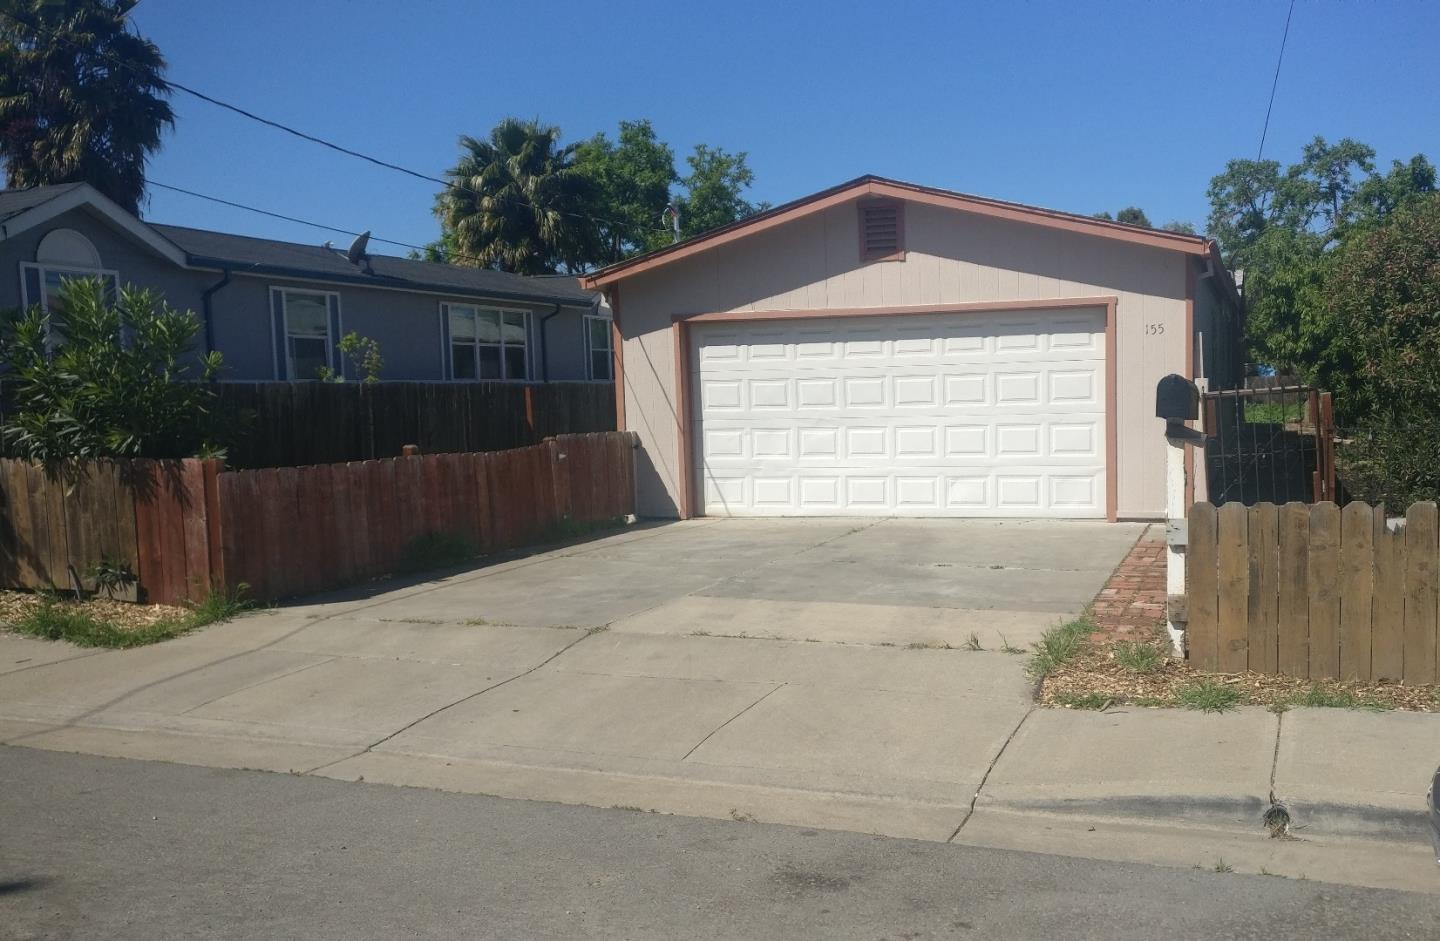 Casa Unifamiliar por un Venta en 155 Crivello Avenue 155 Crivello Avenue Bay Point, California 94565 Estados Unidos